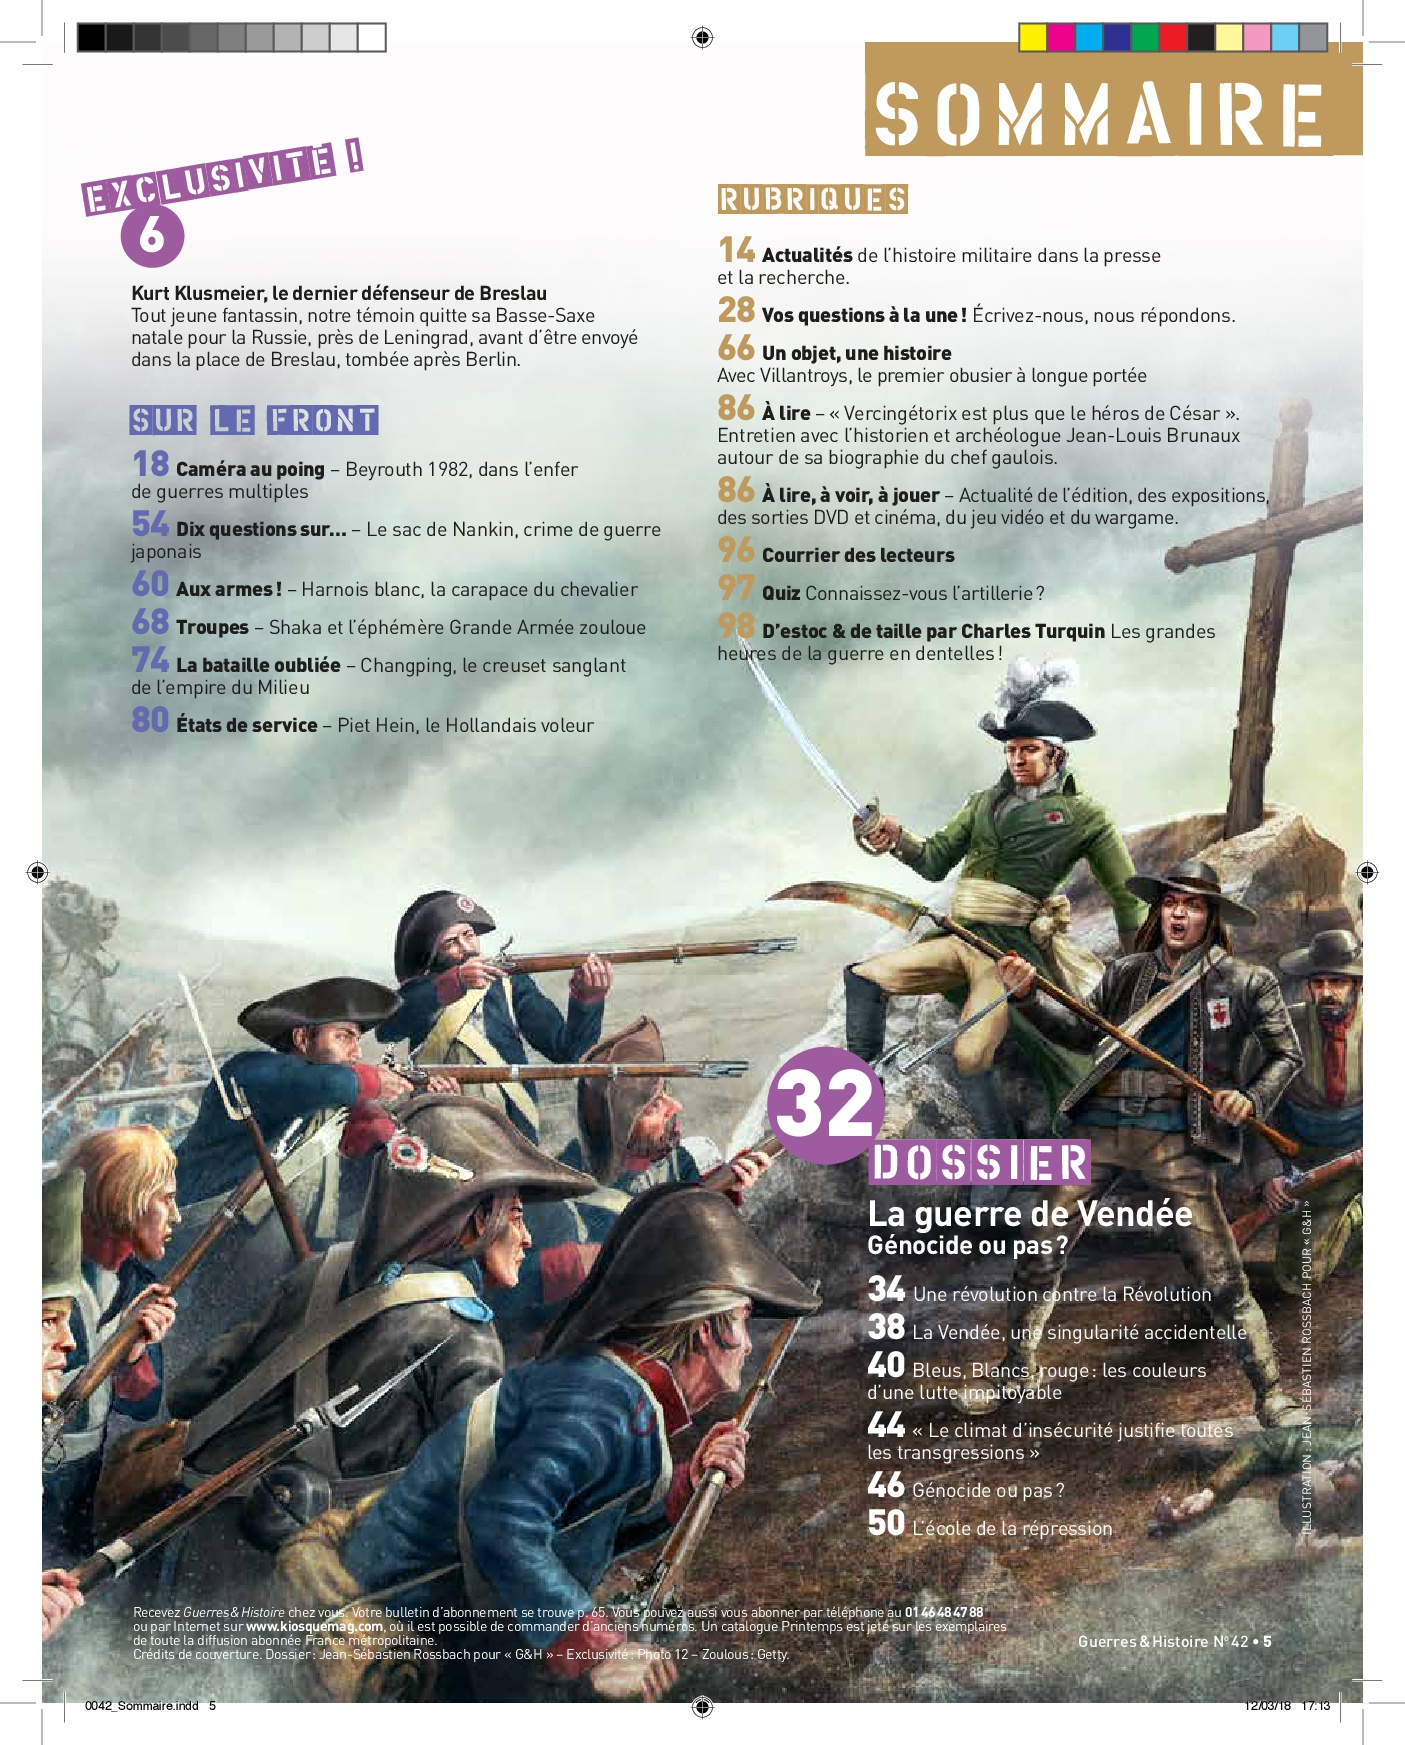 Guerres & Histoire SVGH_0042_05_Sommaire-001